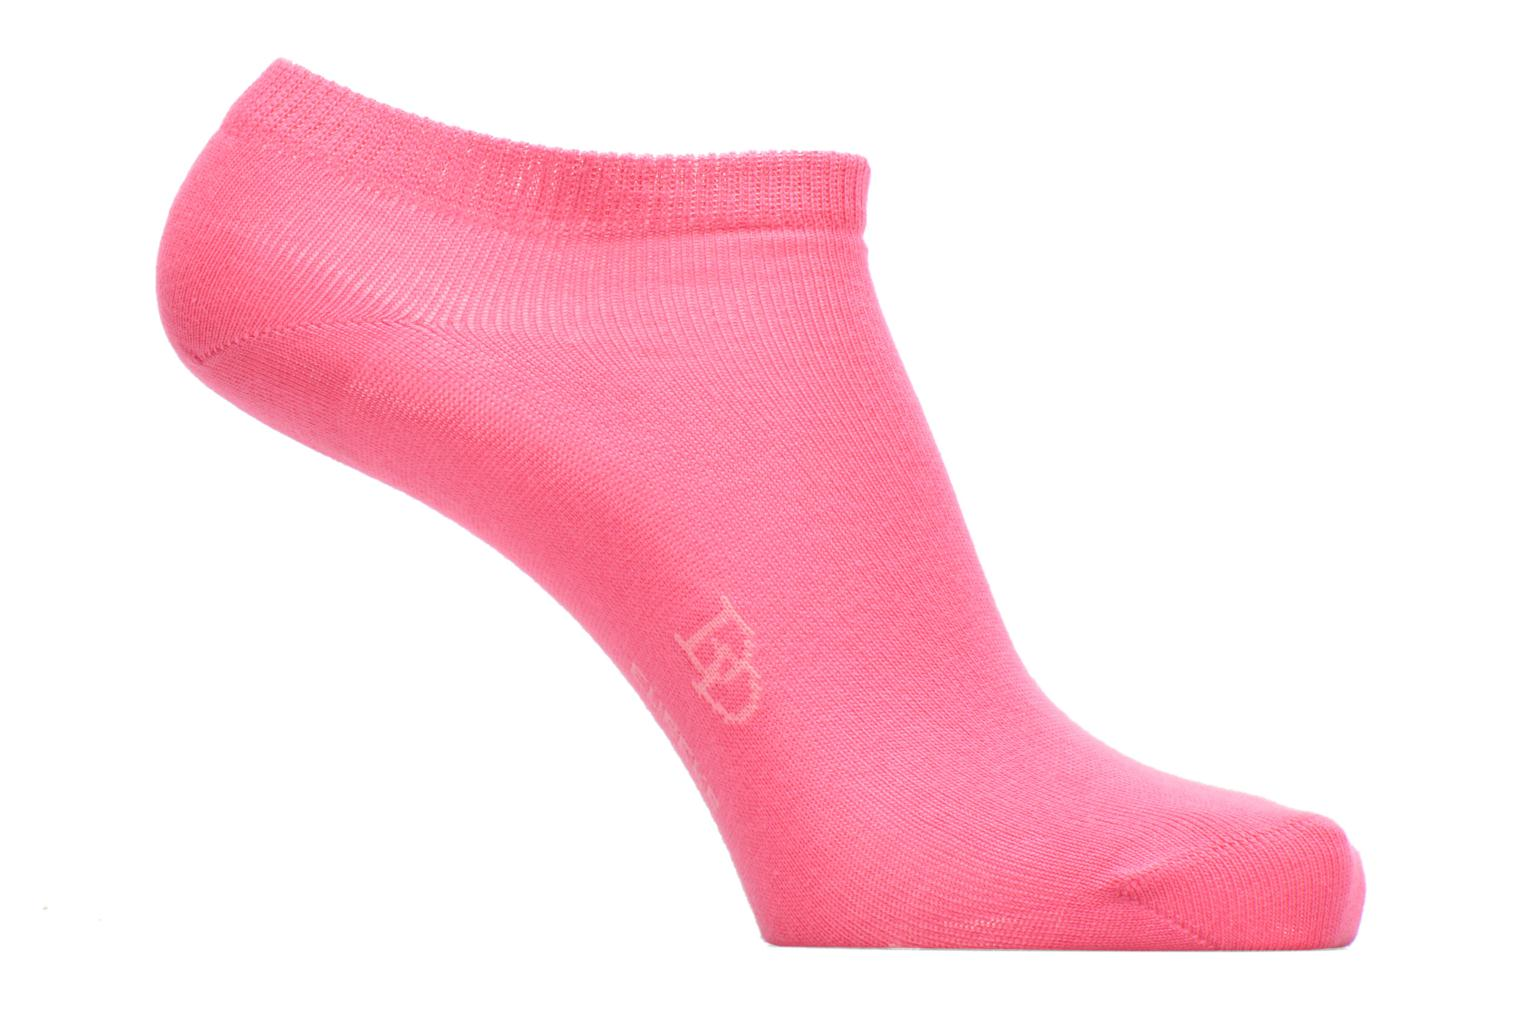 Chaussettes Sneakers Chausson Maille Unie E-day 13948